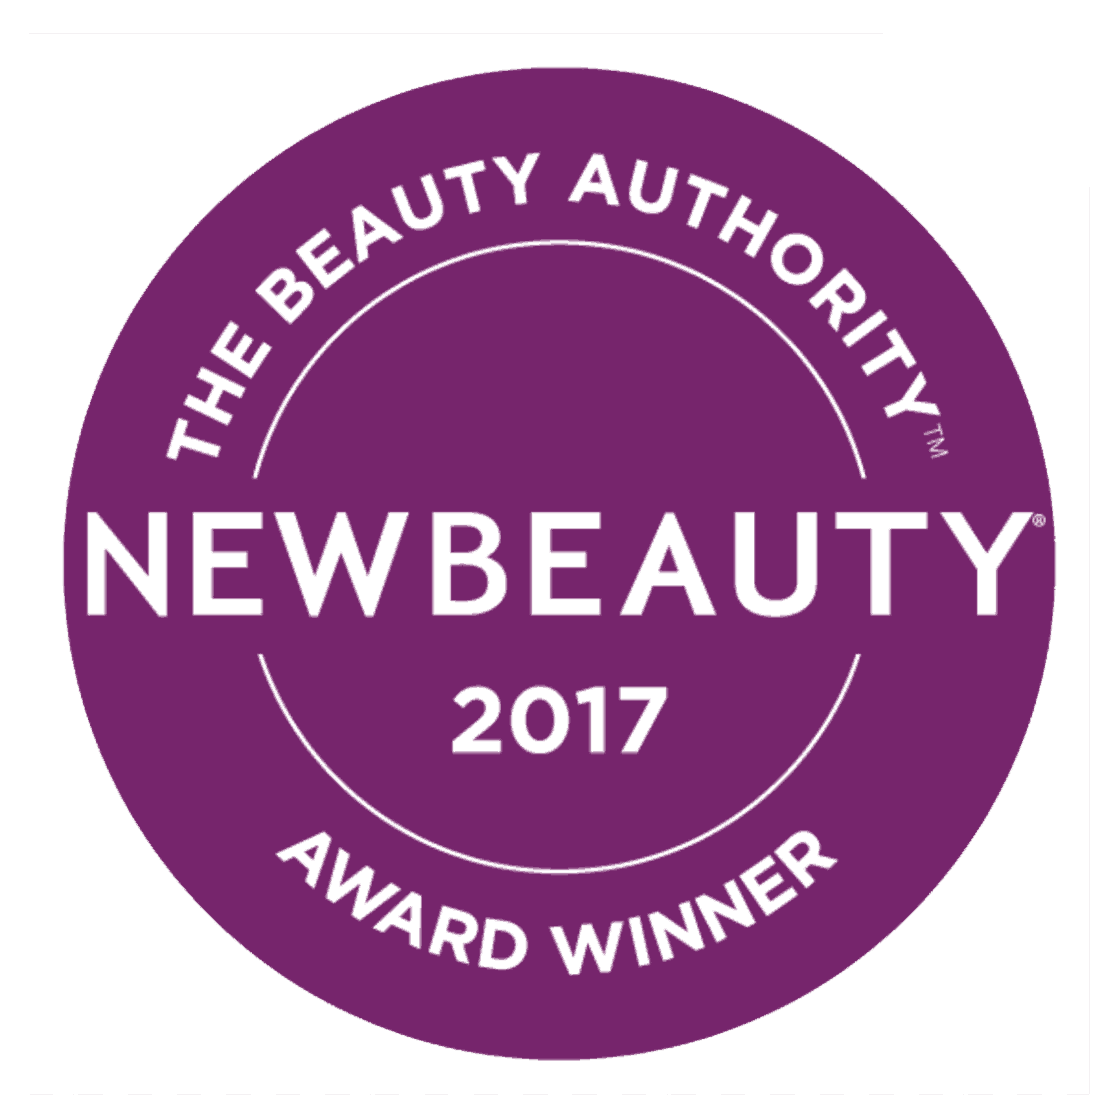 thermiva improves vaginal dryness tightness strengthens muscles at lux medspa atlanta better orgasms no more painful sex feel younger feel better new beauty award 2017 by the beauty authority